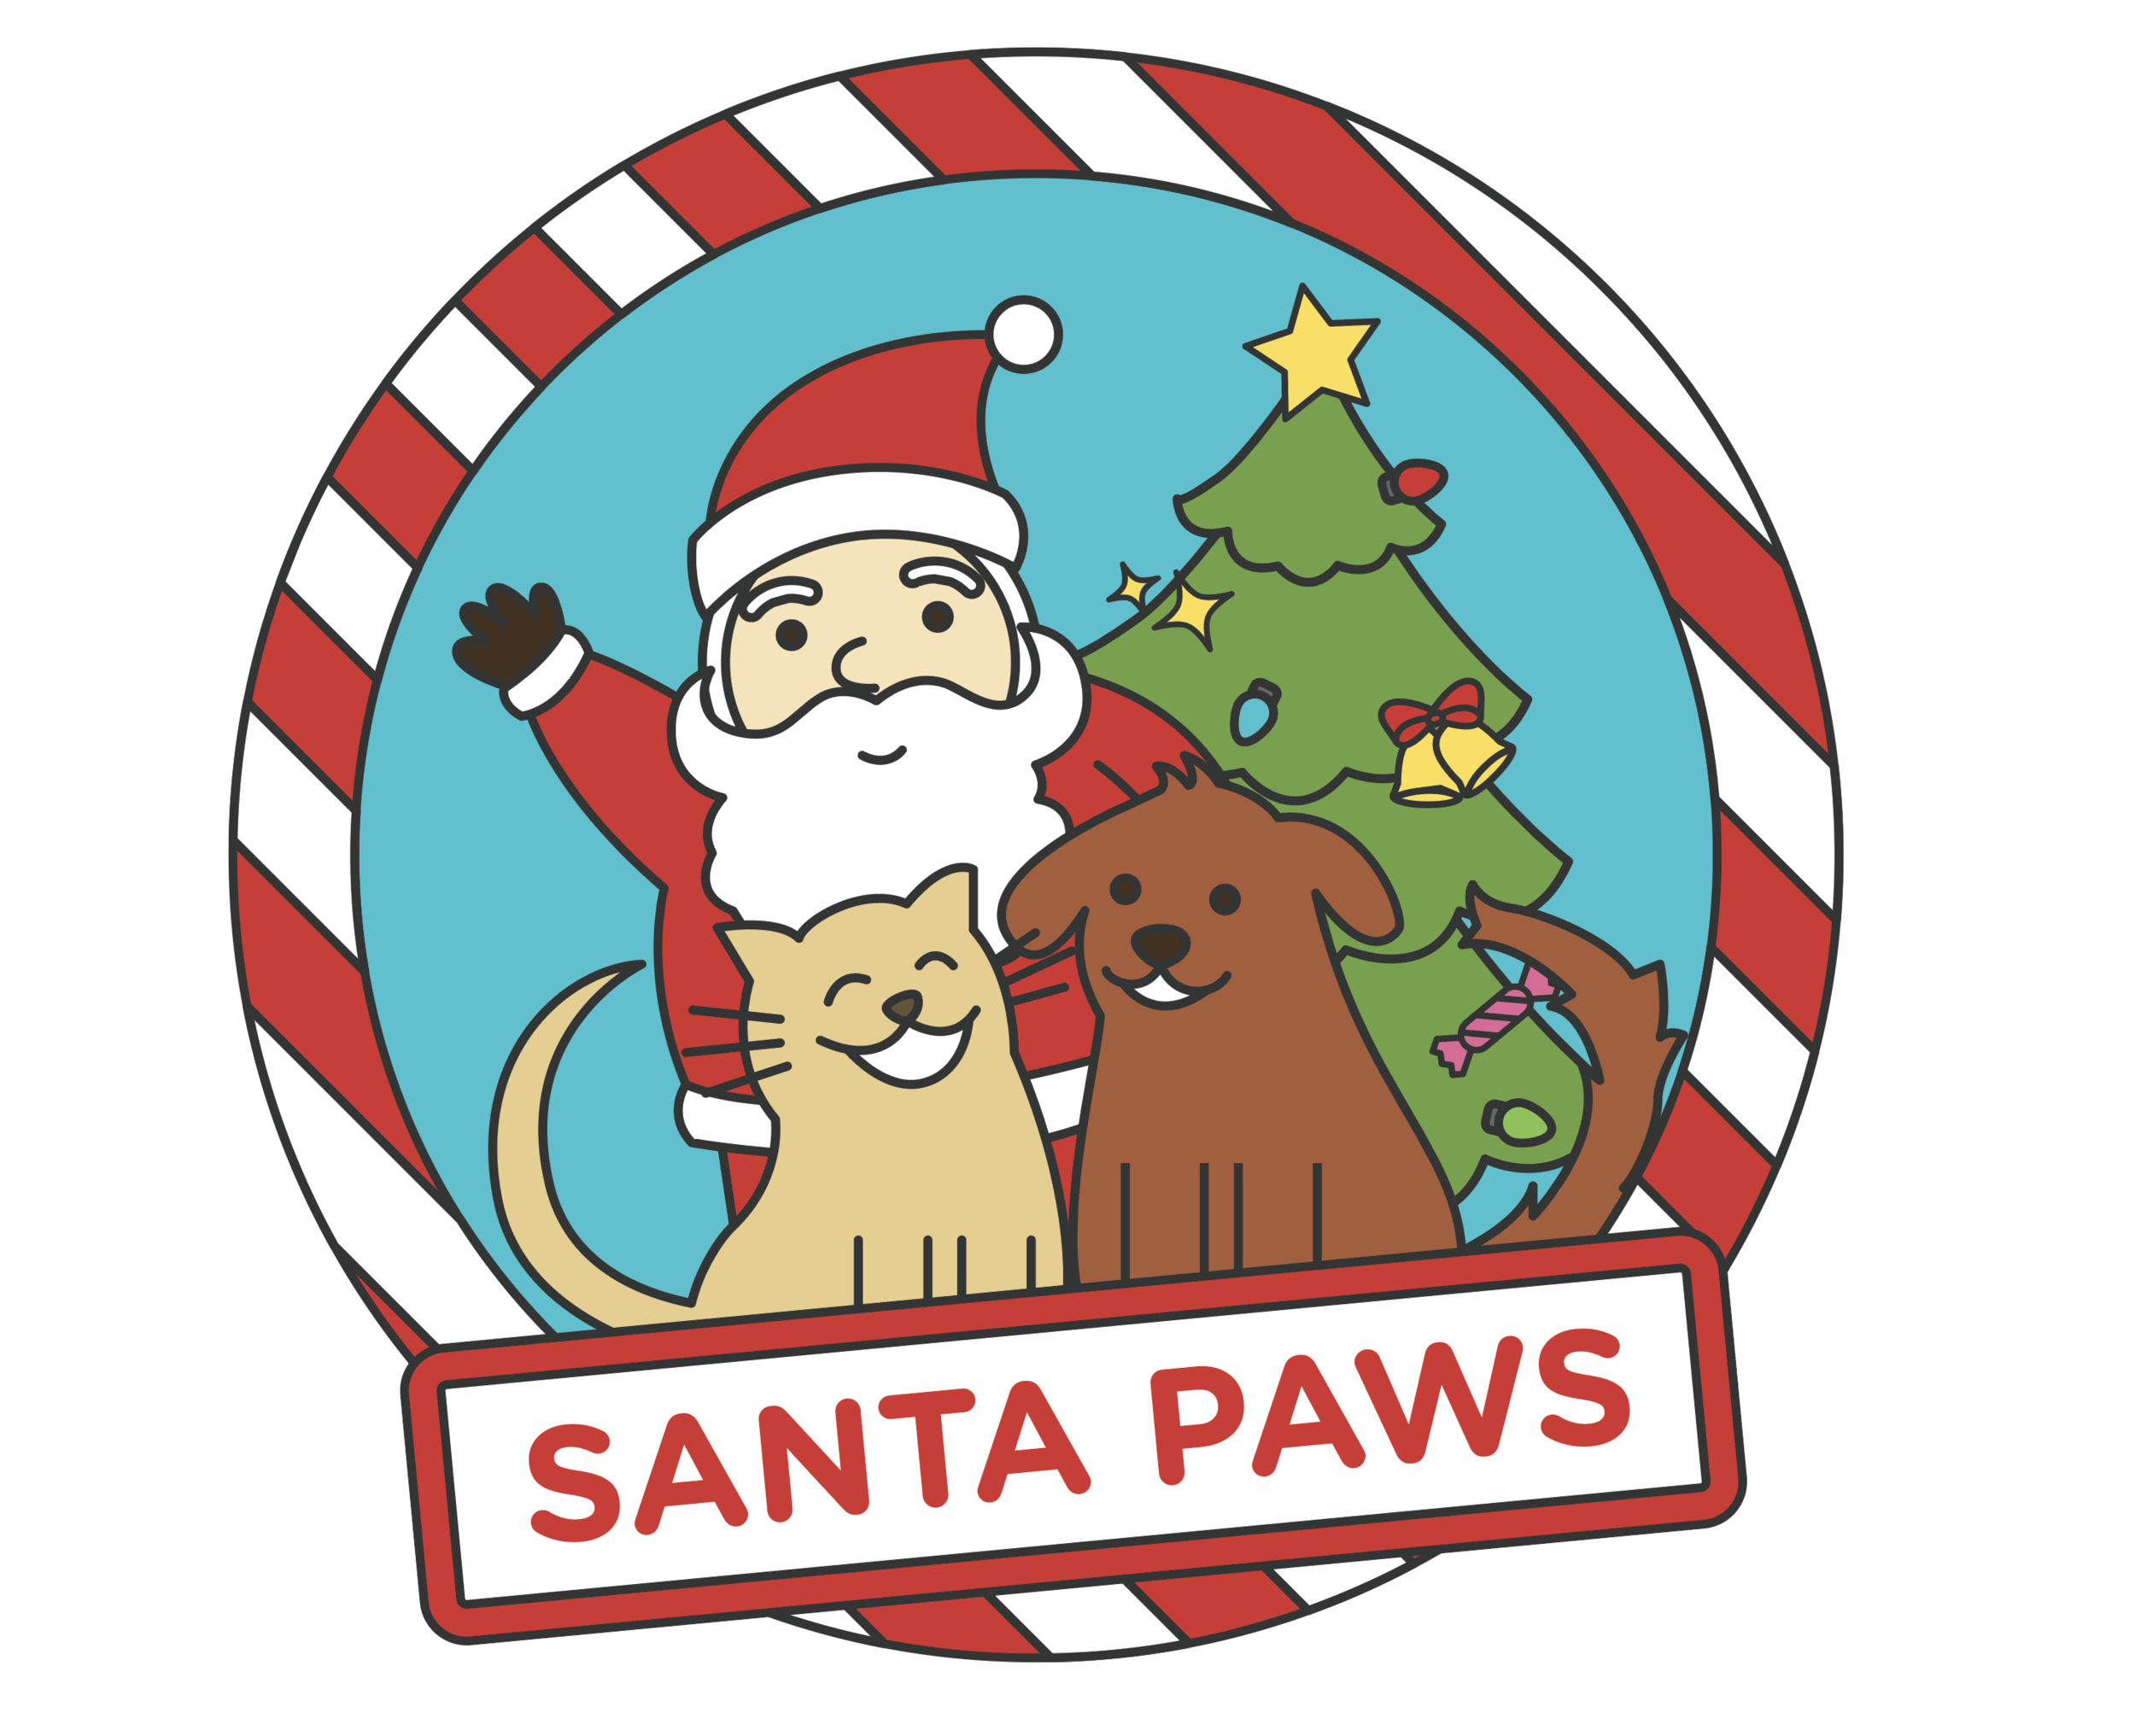 Santa, a dog, a cat, Christmas tree, and a sign that reads Santa Paws